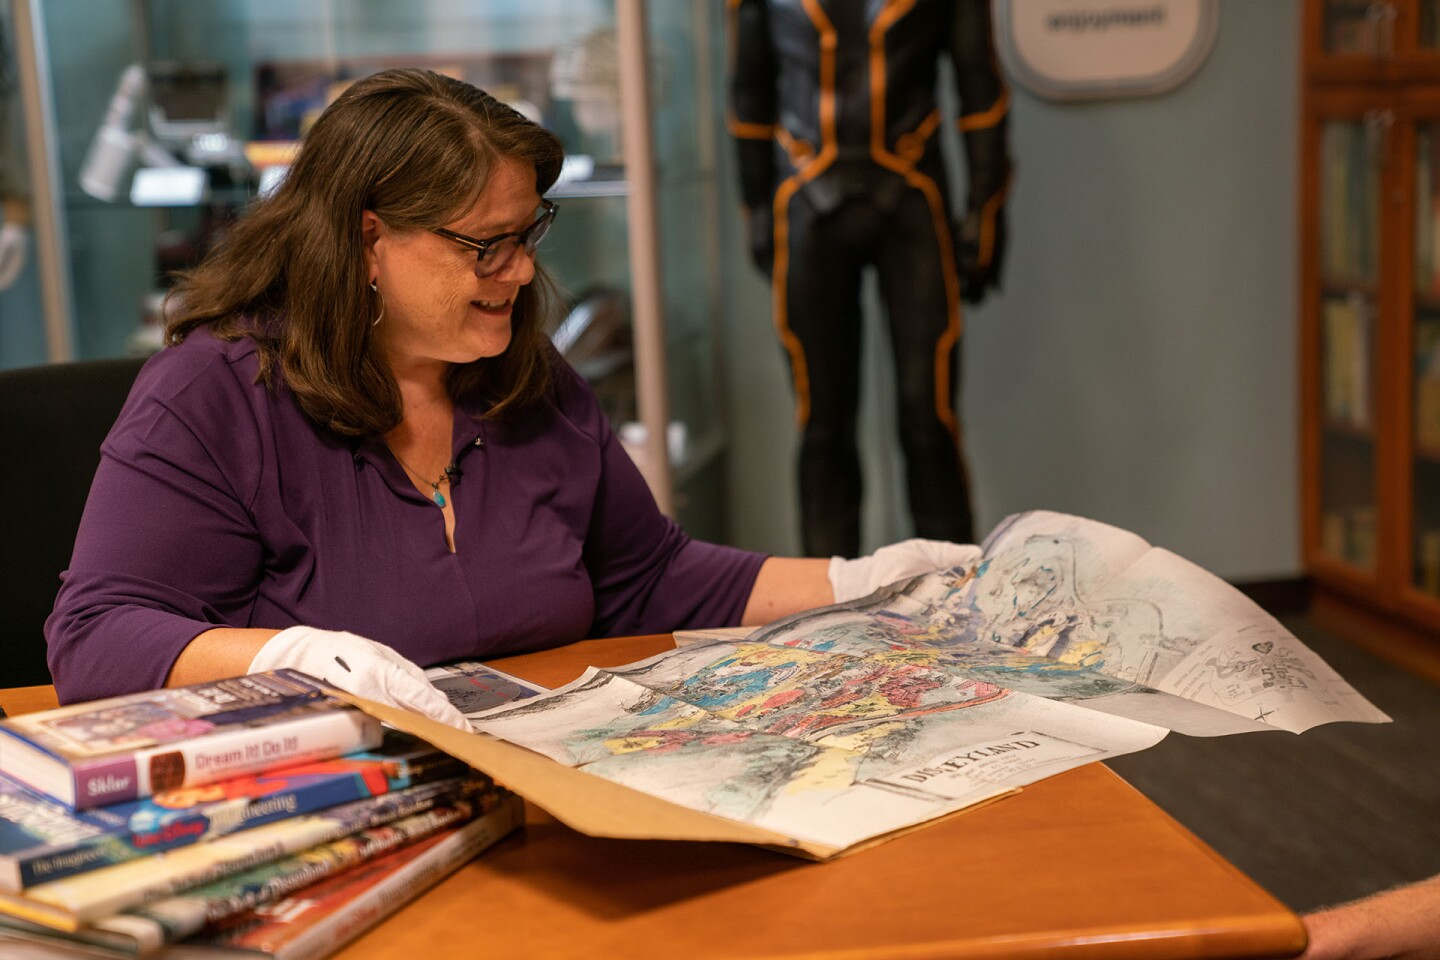 Rebecca Cline unfolds the hand-drawn sketch that started the Disneyland | Katie Noonan